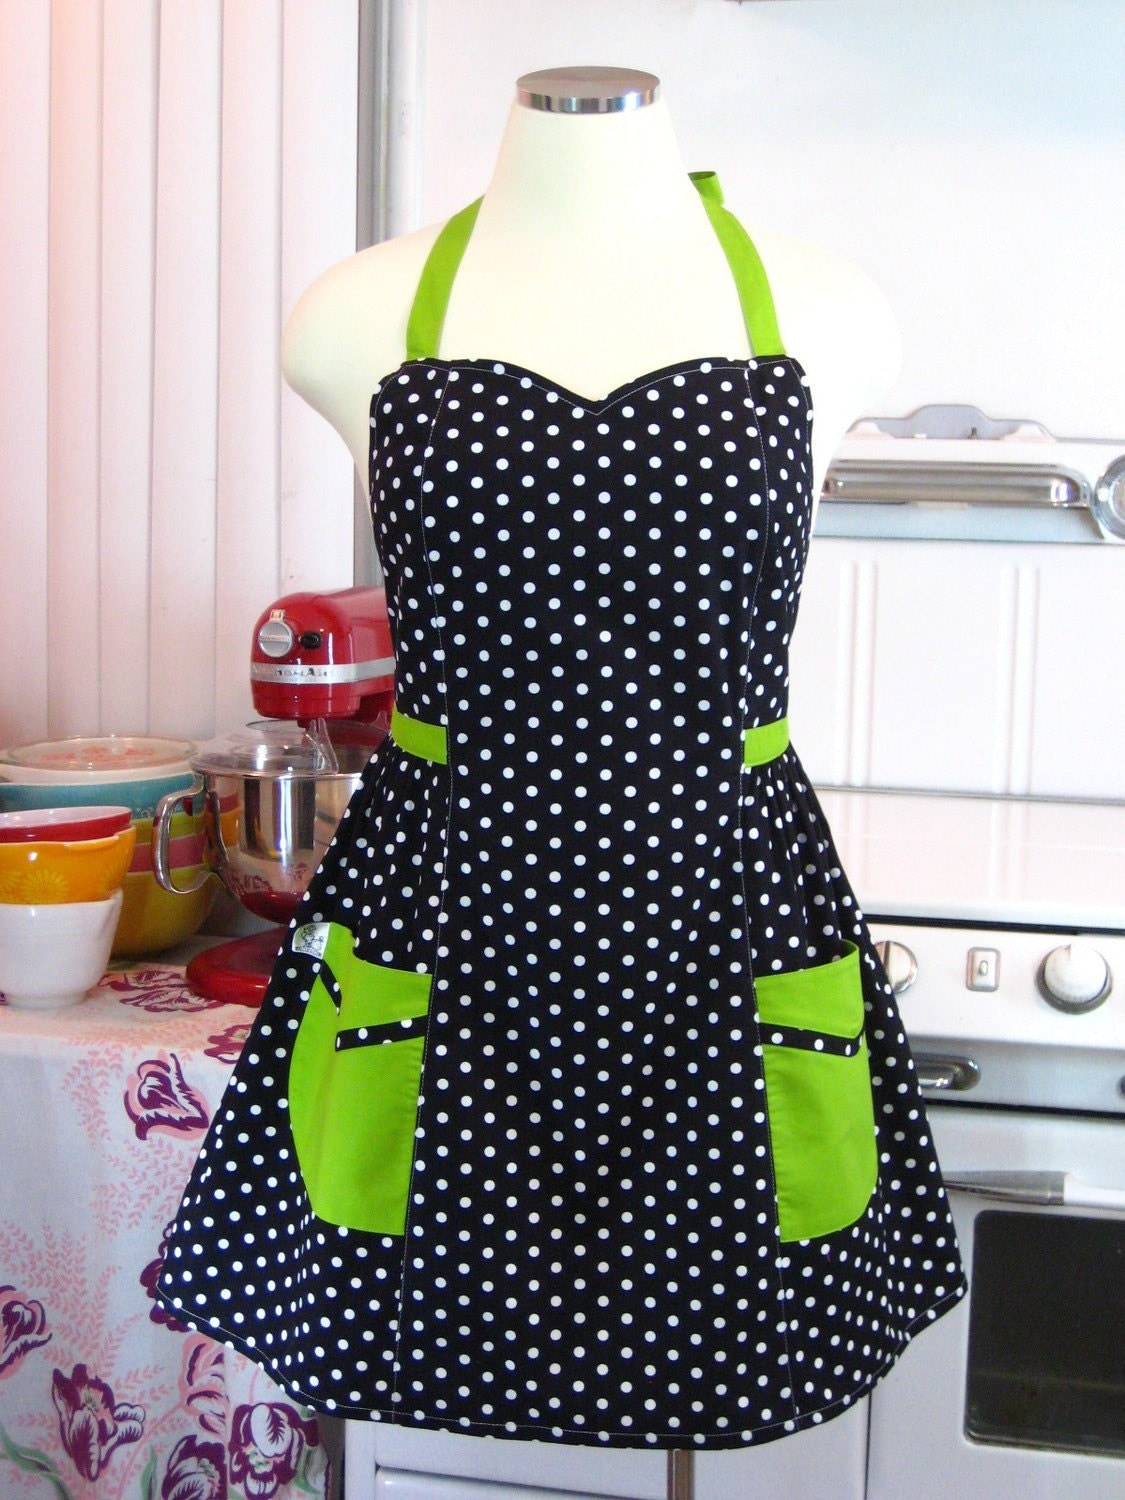 The BETTY - Plus Size Apron - Black and White Polka Dot with Lime Green